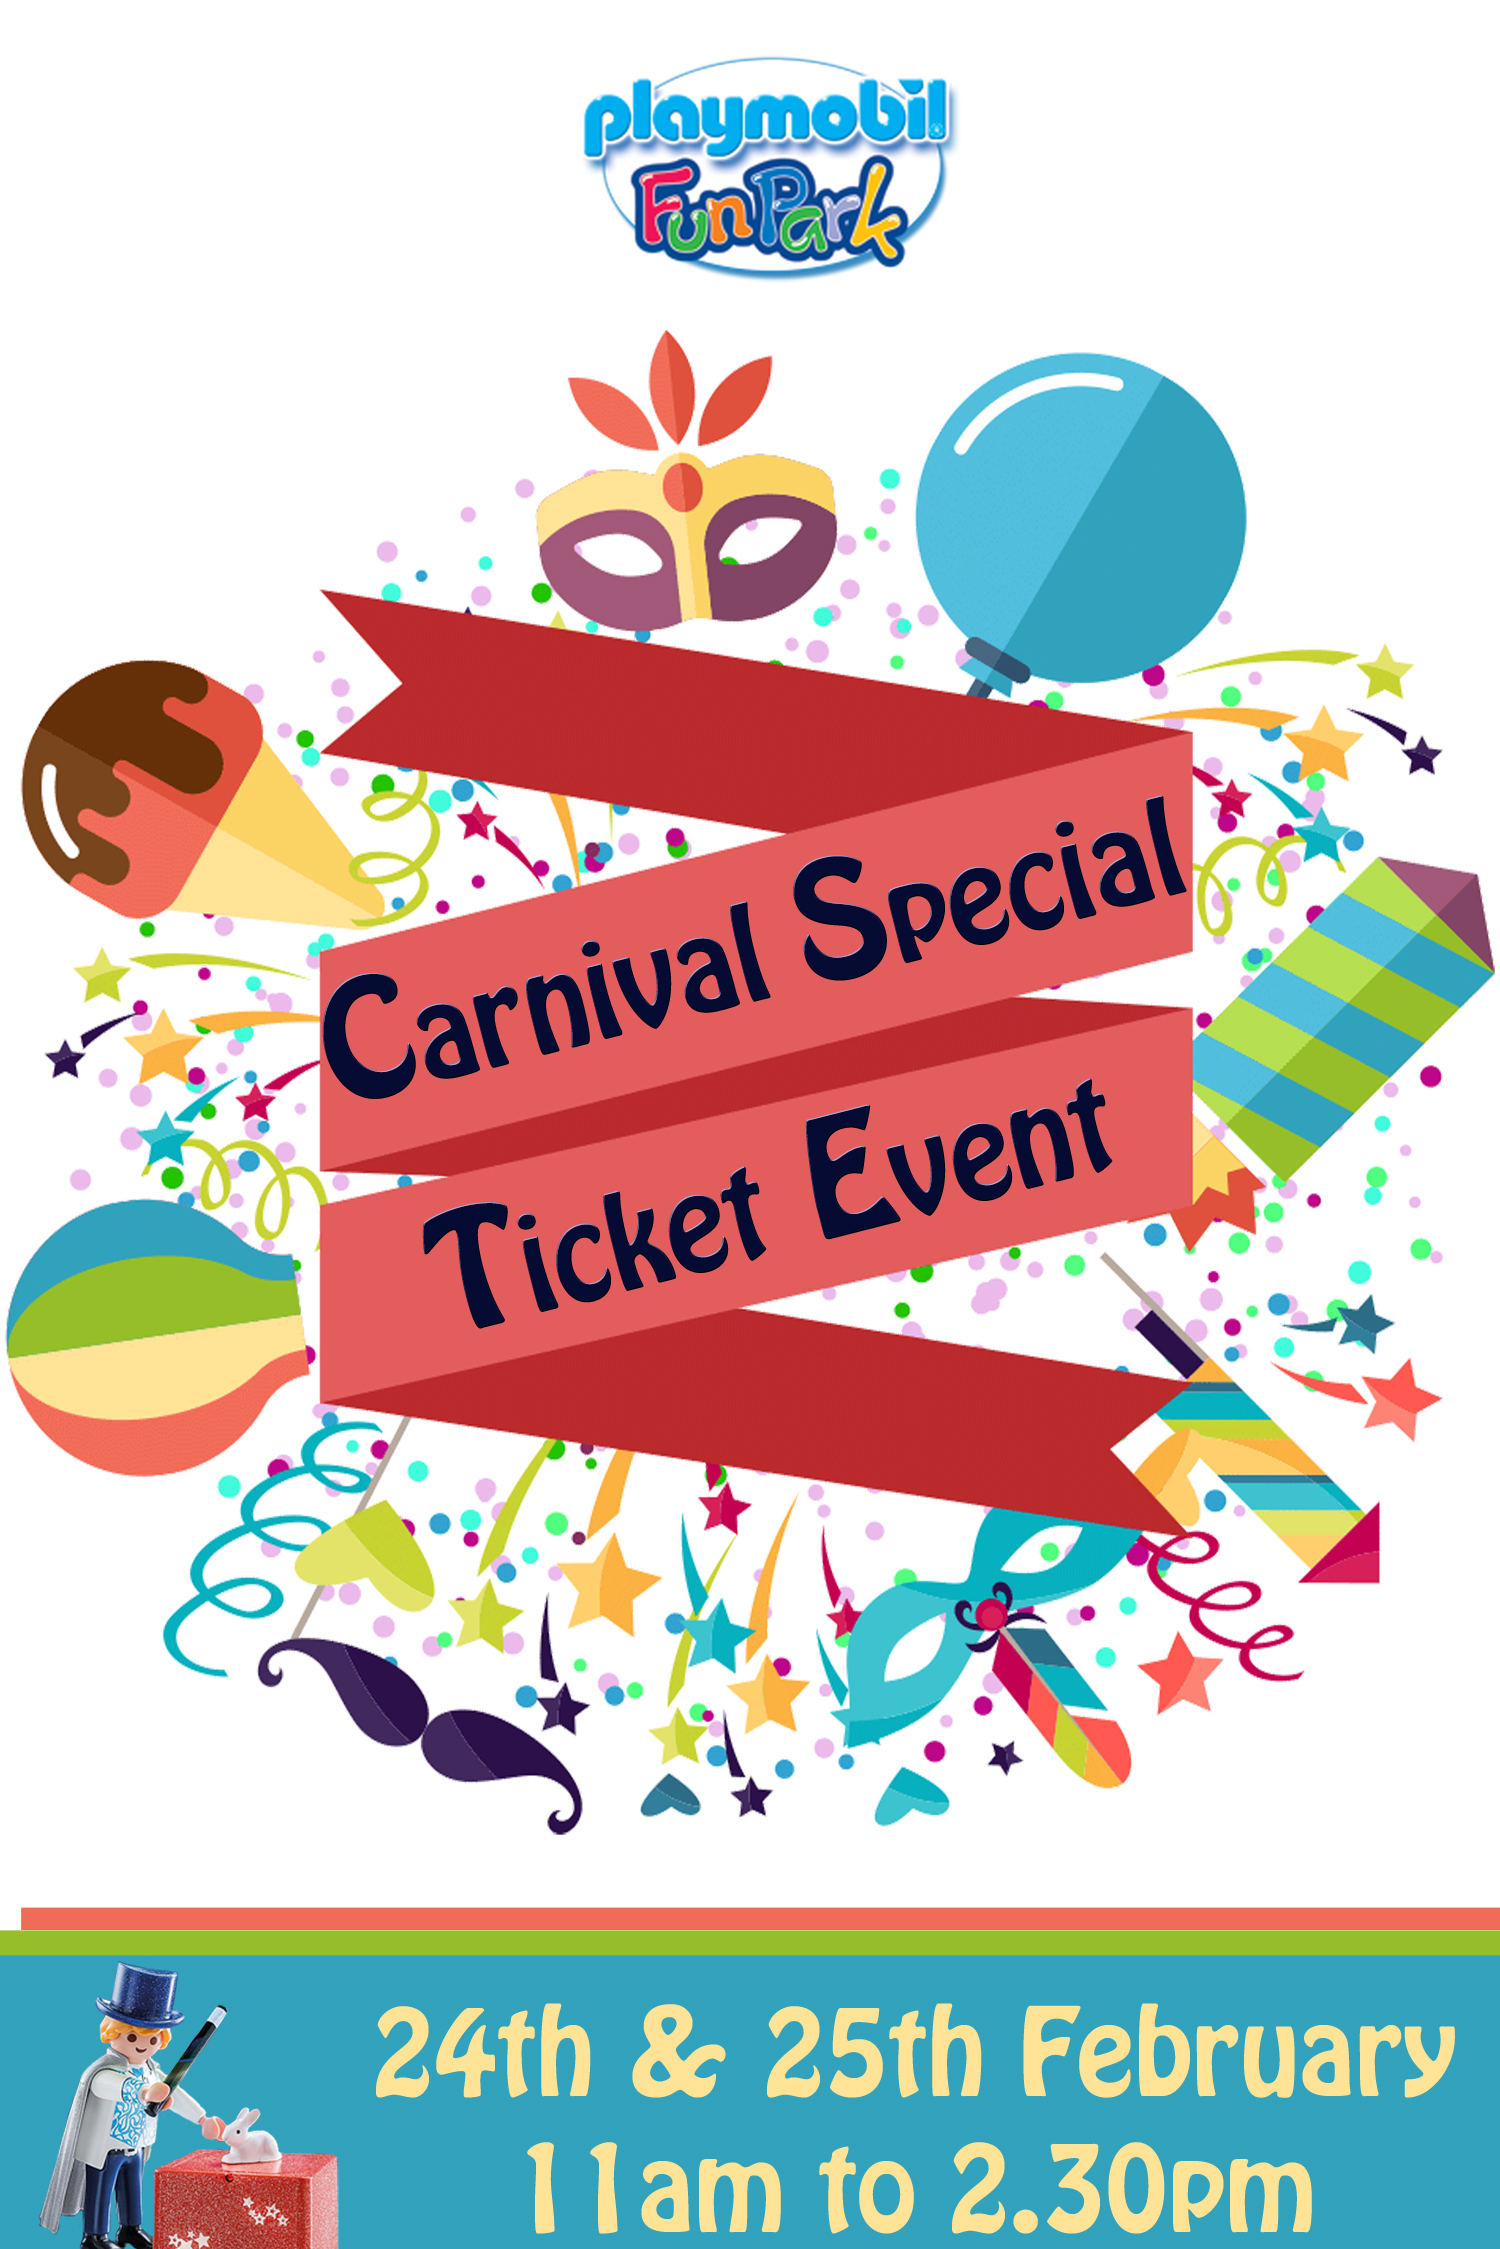 Carnival Special Ticket Event flyer